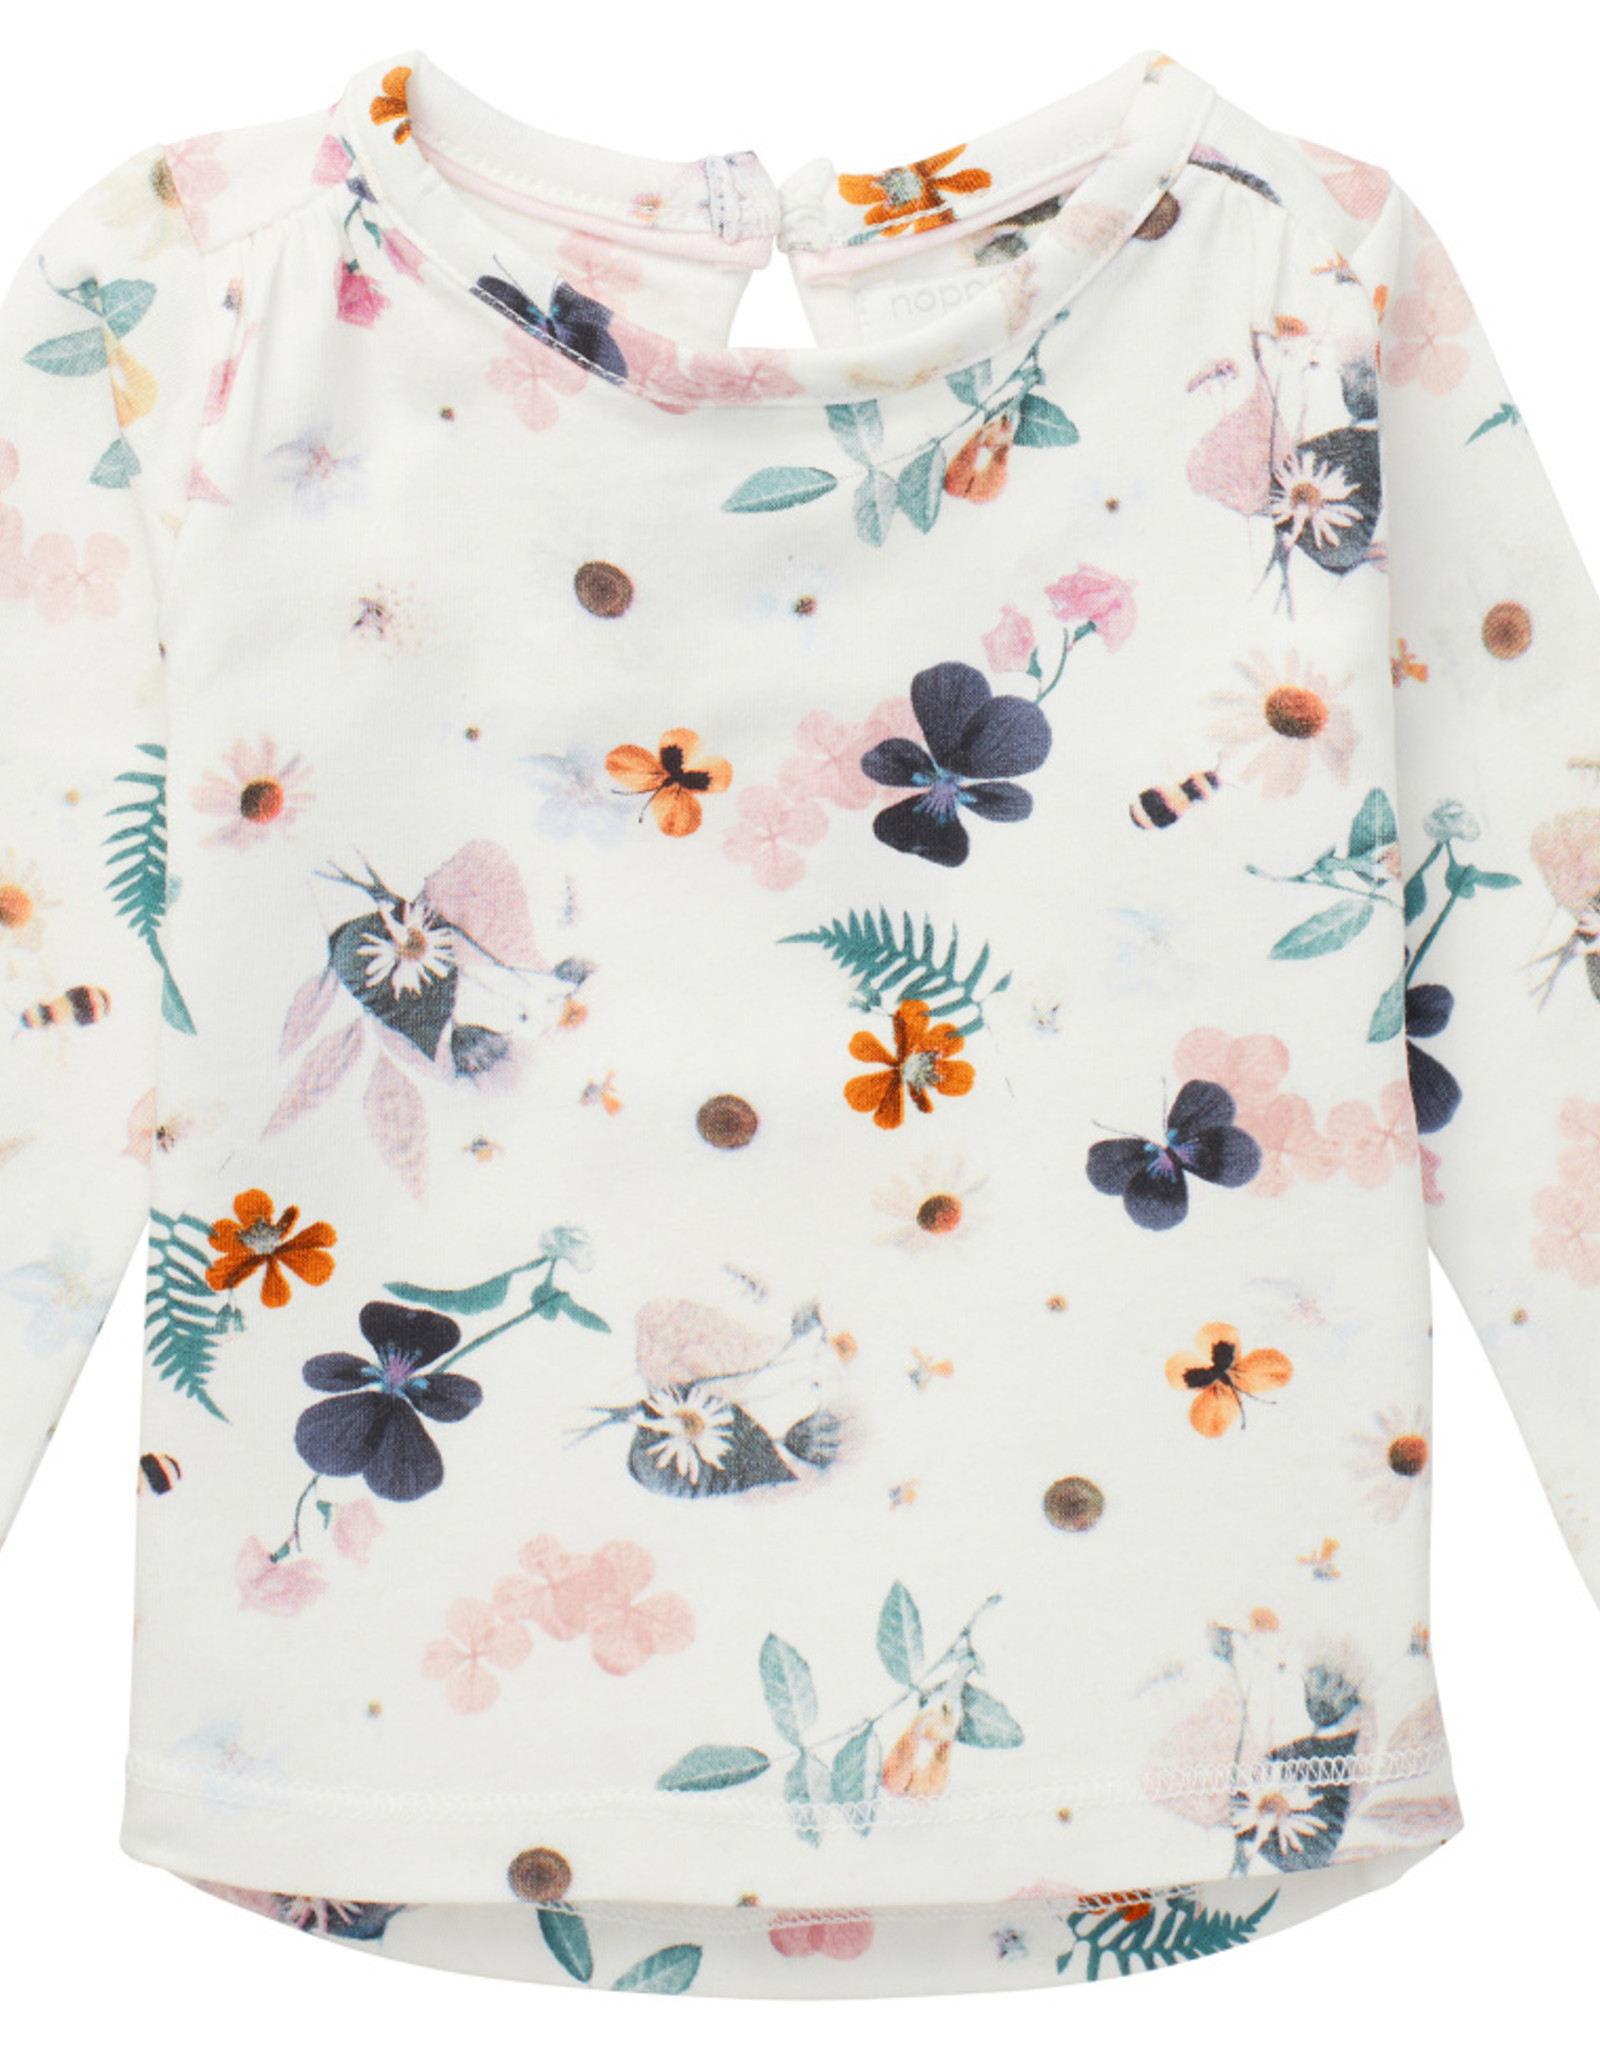 Noppies SP21 BbyG Floral Minnedosa Top